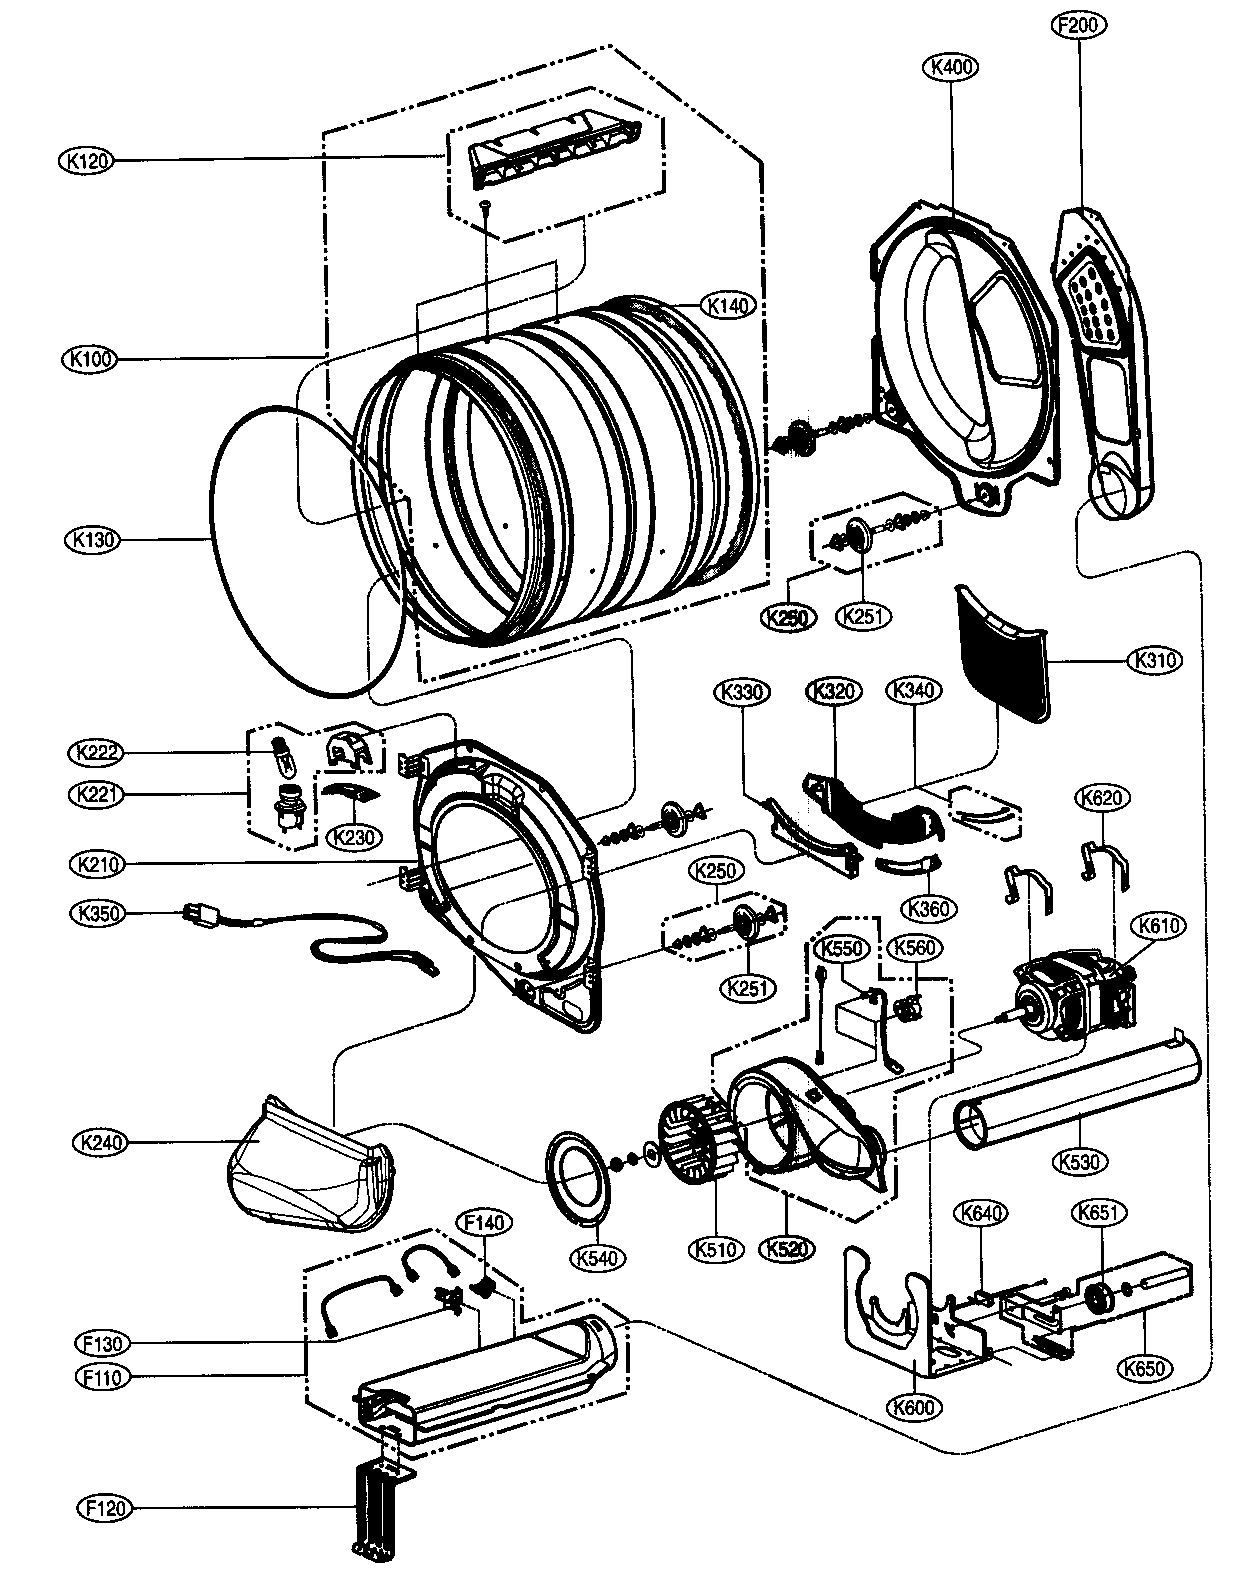 DRUM/MOTOR ASSY Diagram & Parts List for Model dlg9588sm